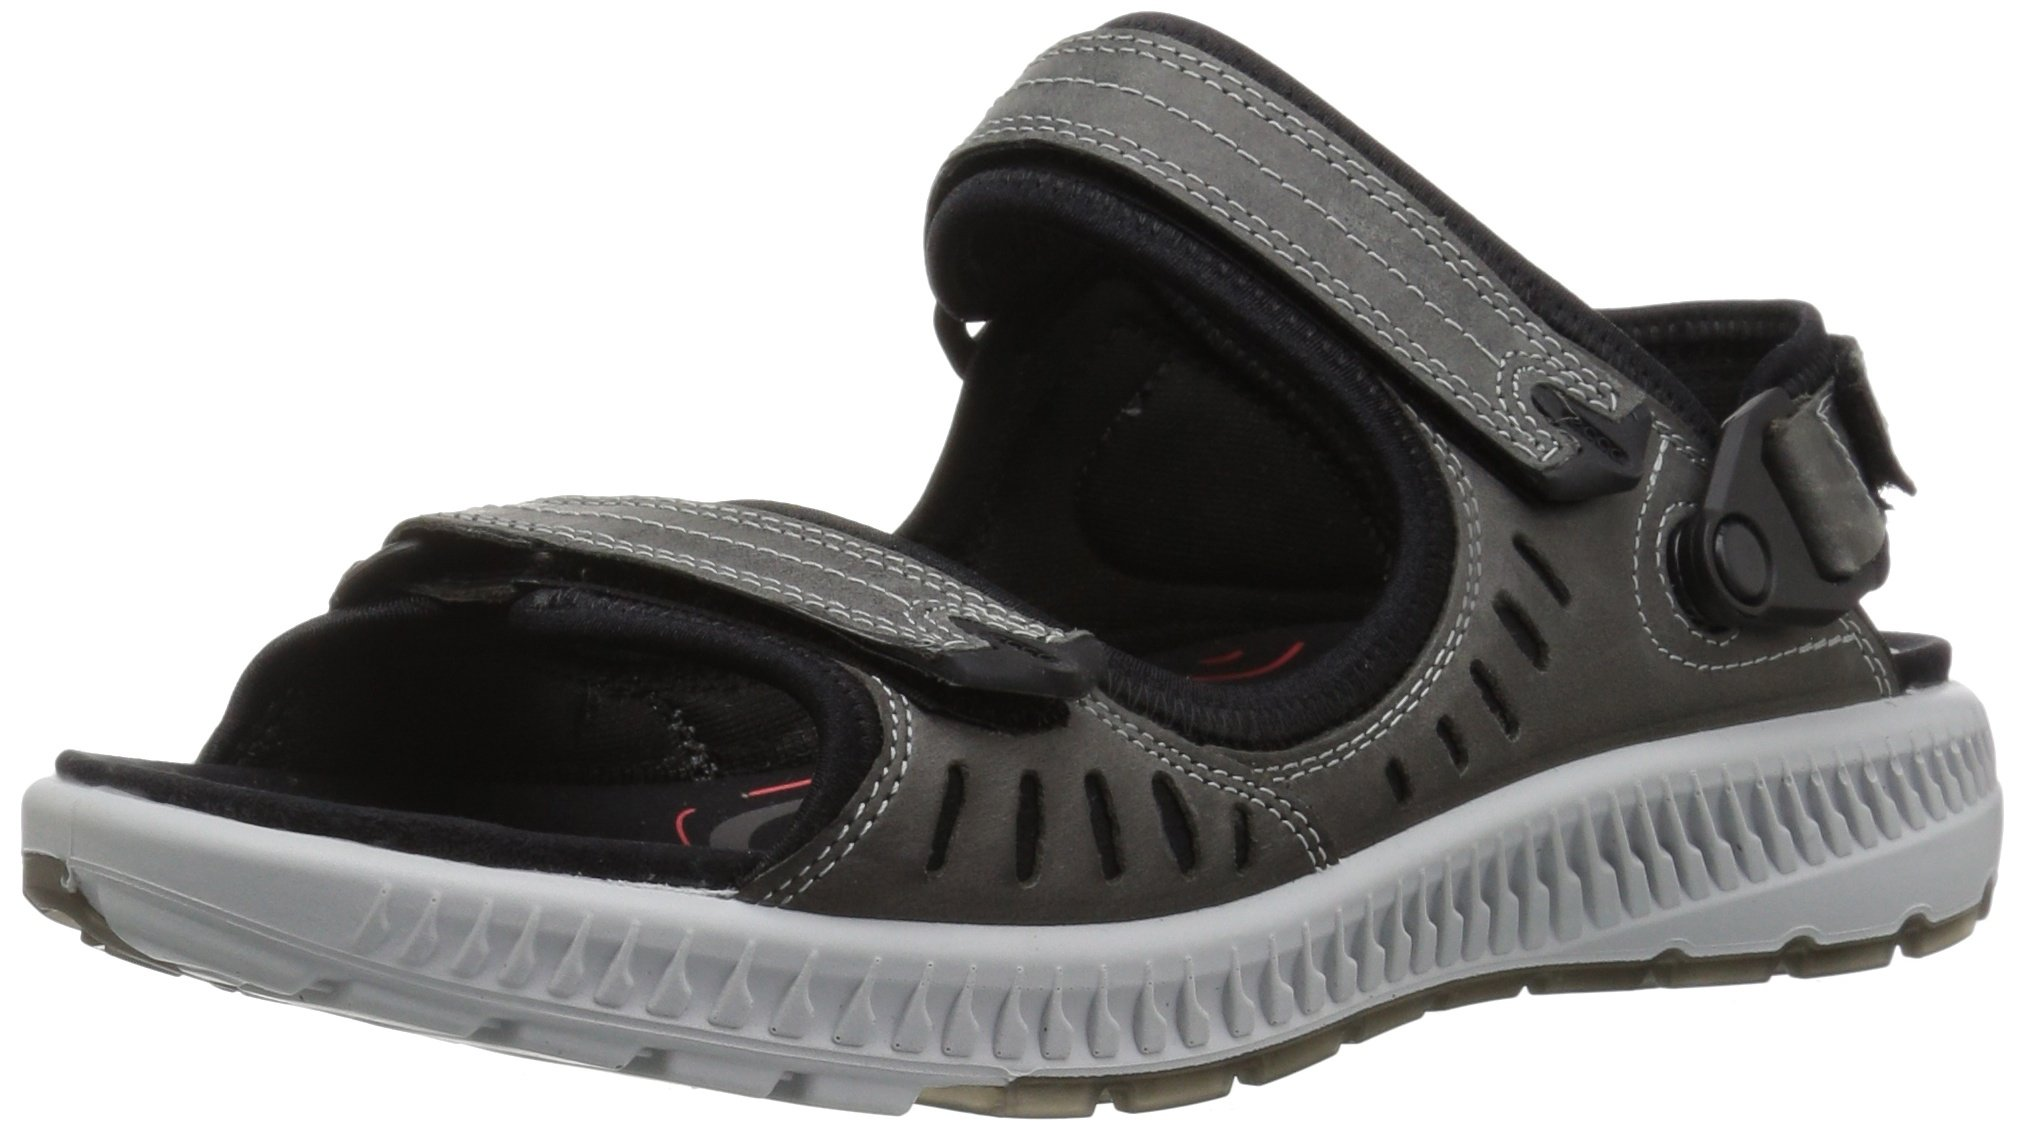 ECCO Women's Terra 2S Athletic Sandal, Titanium, 39 EU/8-8.5 M US